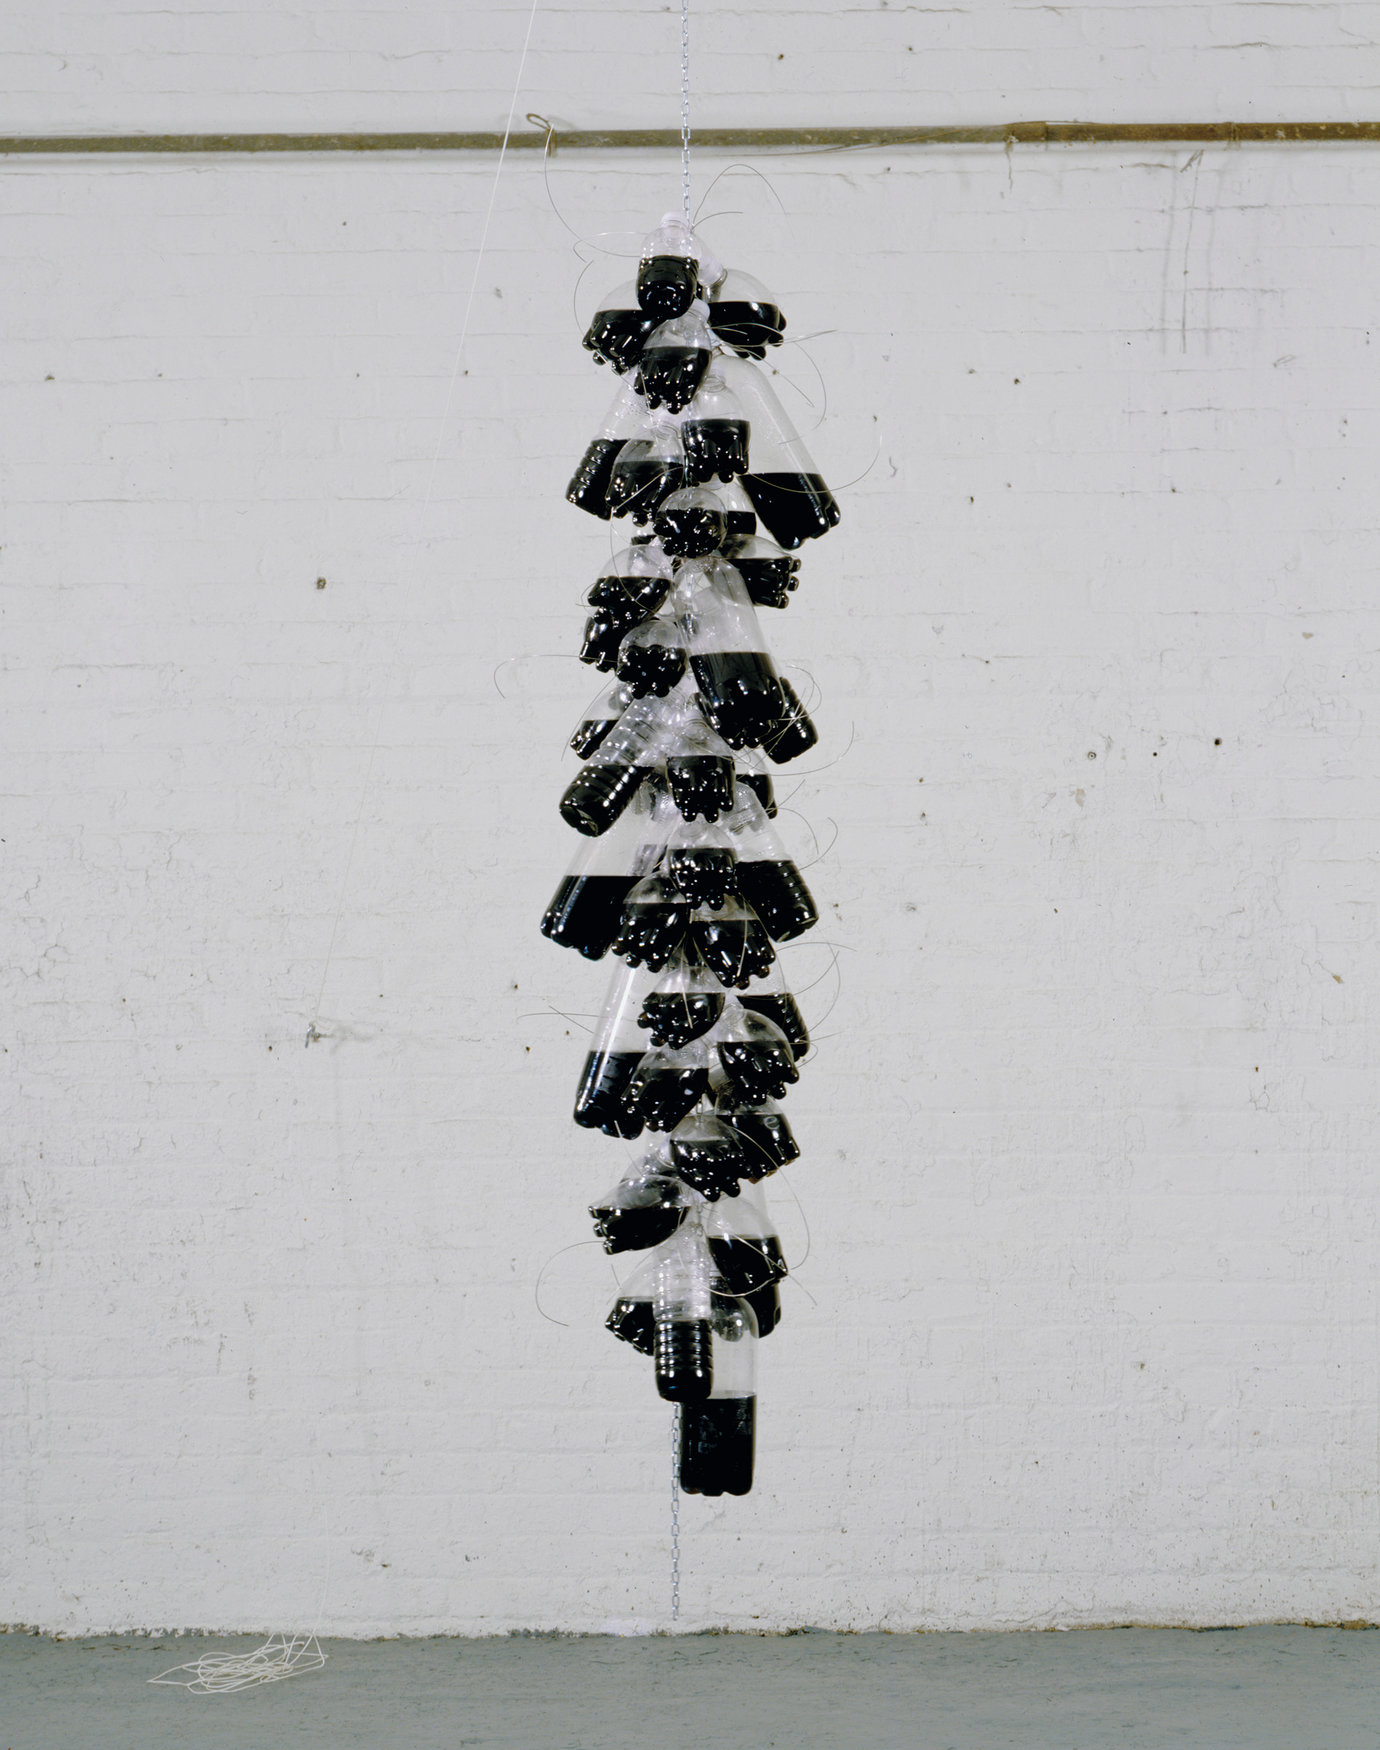 ", 2007. Plastic bottles with screw caps, india ink, water, stainless steel wire, chain, 84"" x 16"" diameter (213.4 cm x 40.6 cm)."